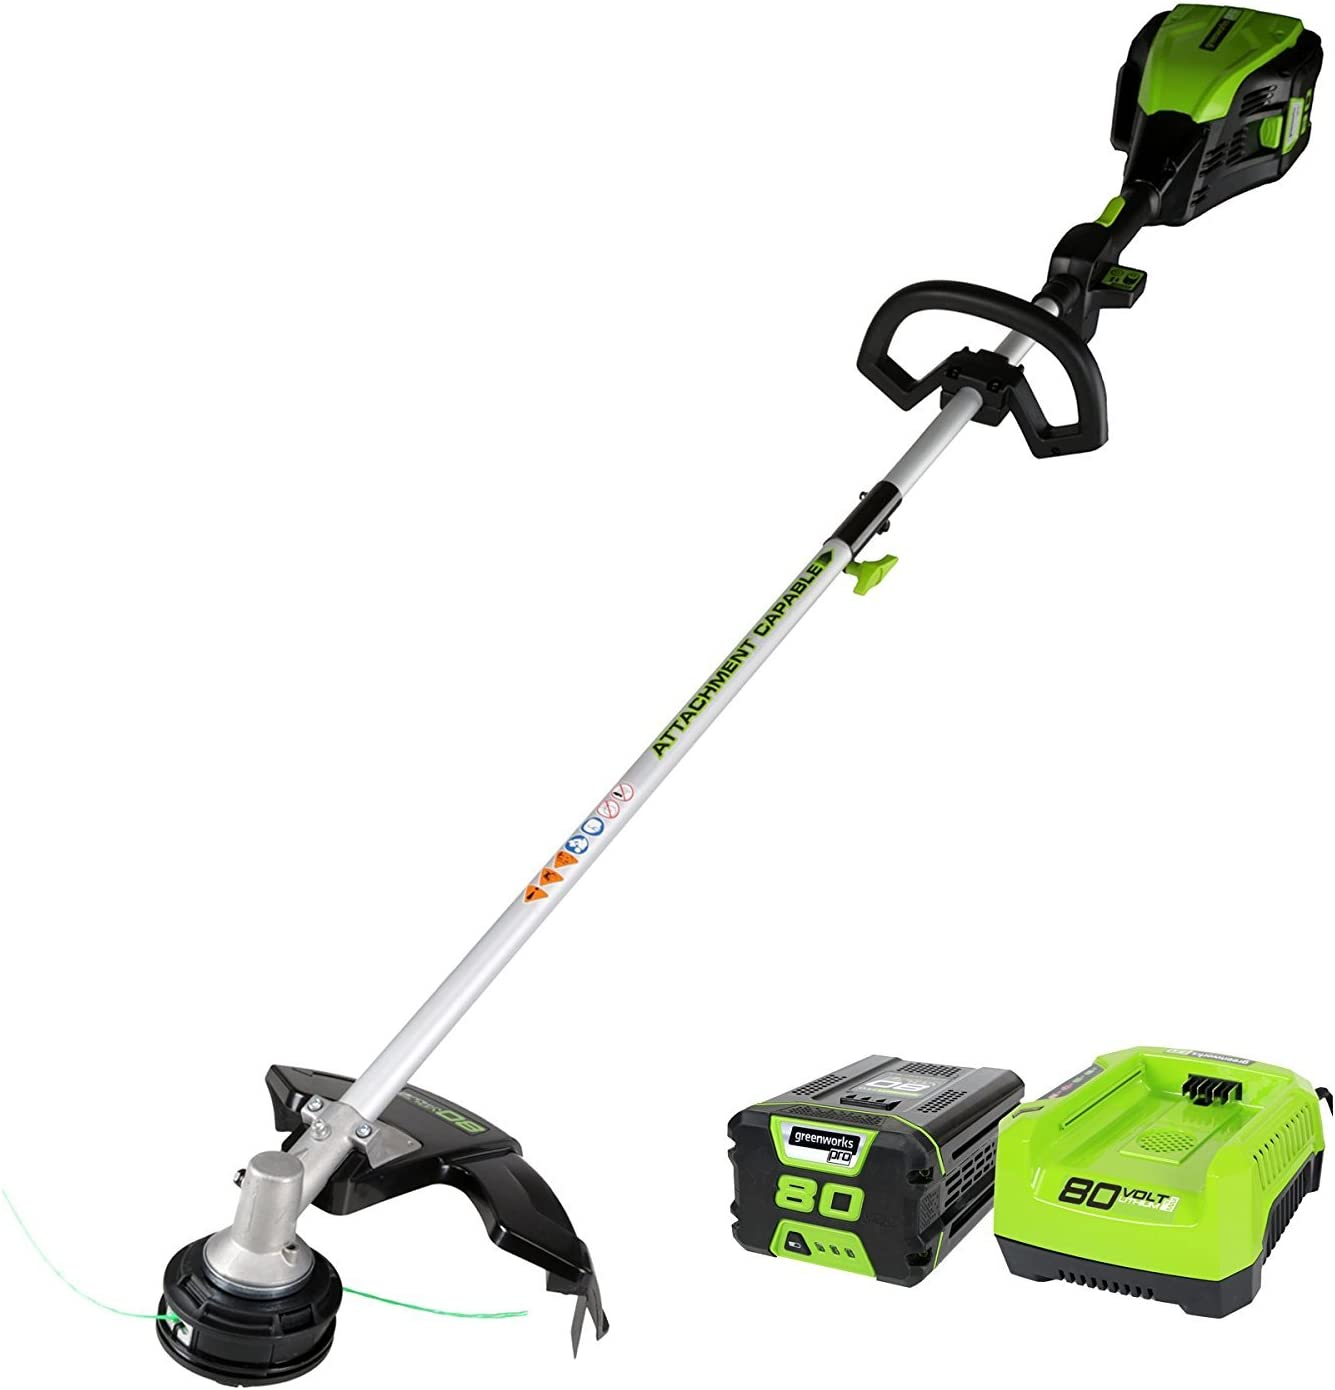 Greenworks 80V Cordless String Trimmer (Attachment Capable), 2.0Ah Battery & Charger Included GST80320